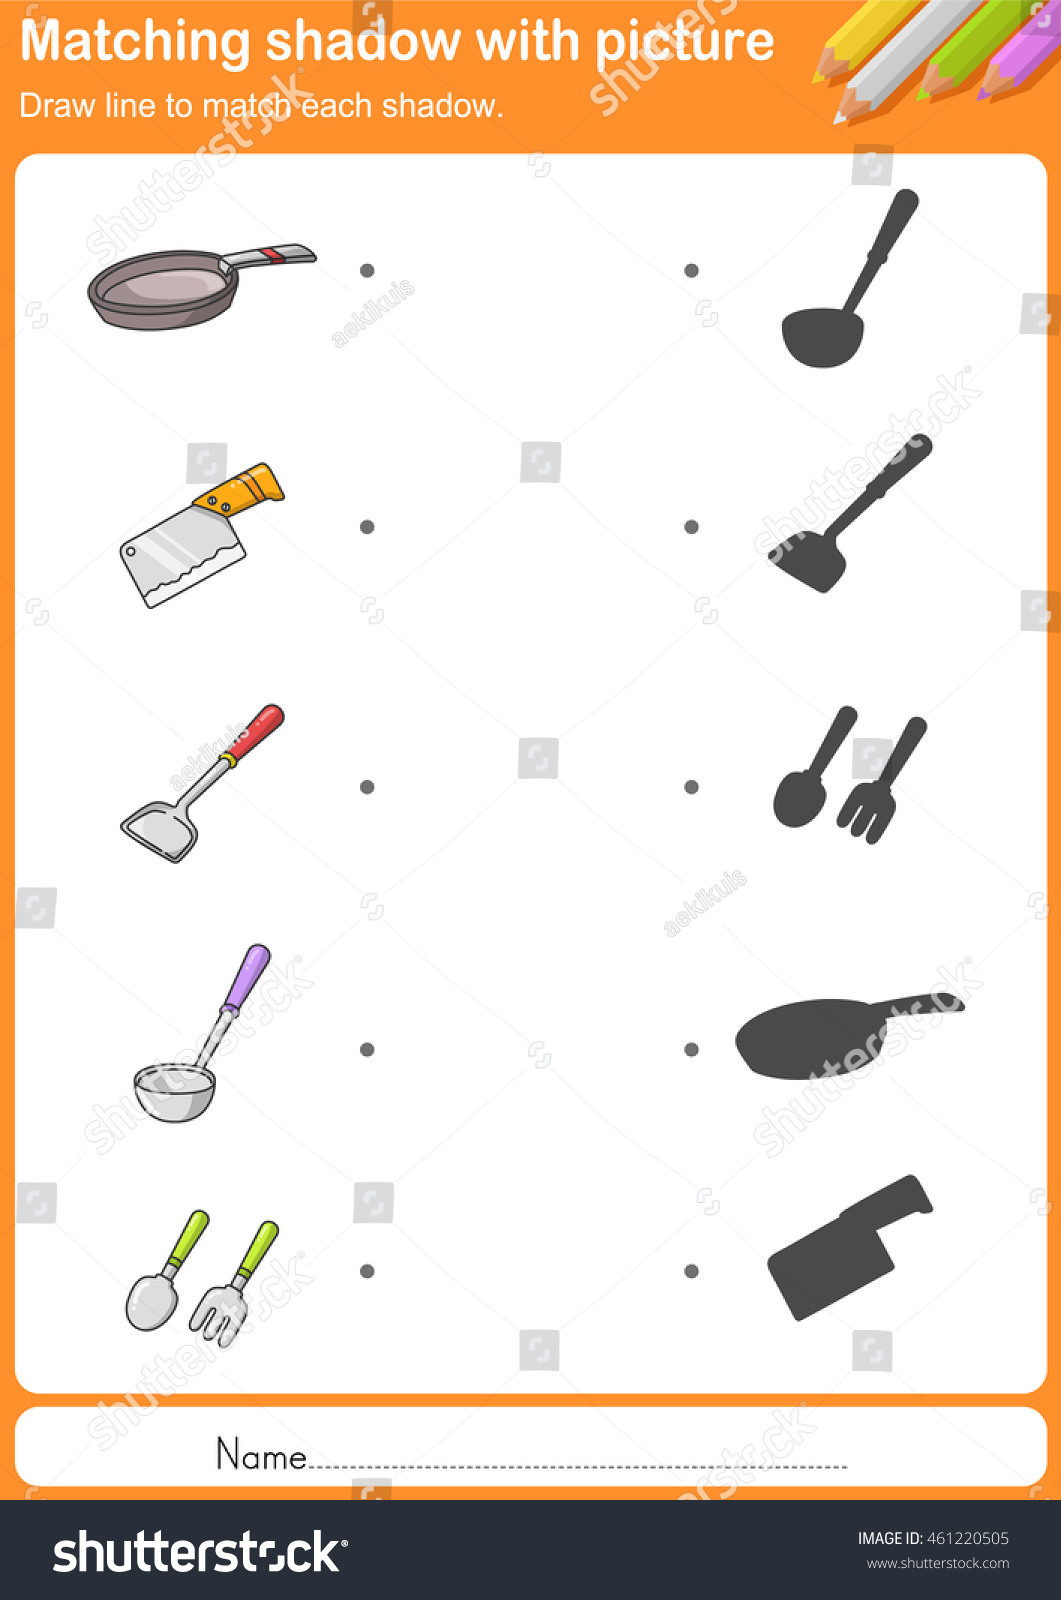 Match Kitchen Tools Shadow Worksheet Education Stock